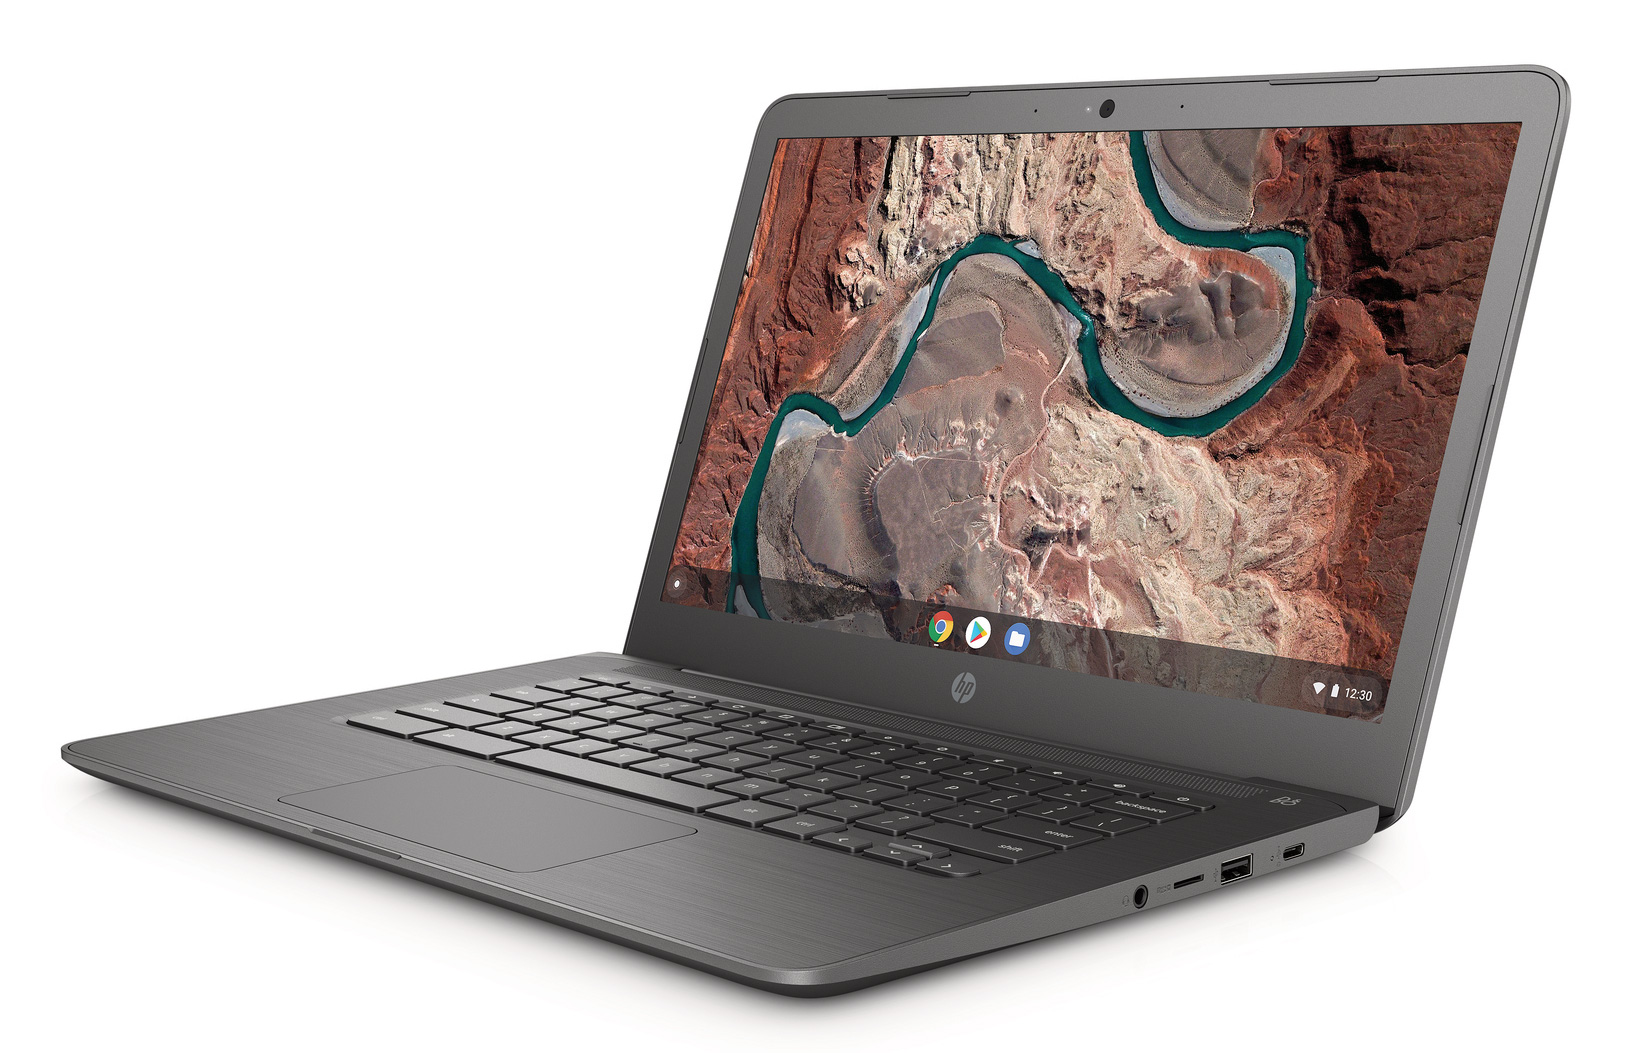 HP is releasing two new Chromebooks, one powered by AMD